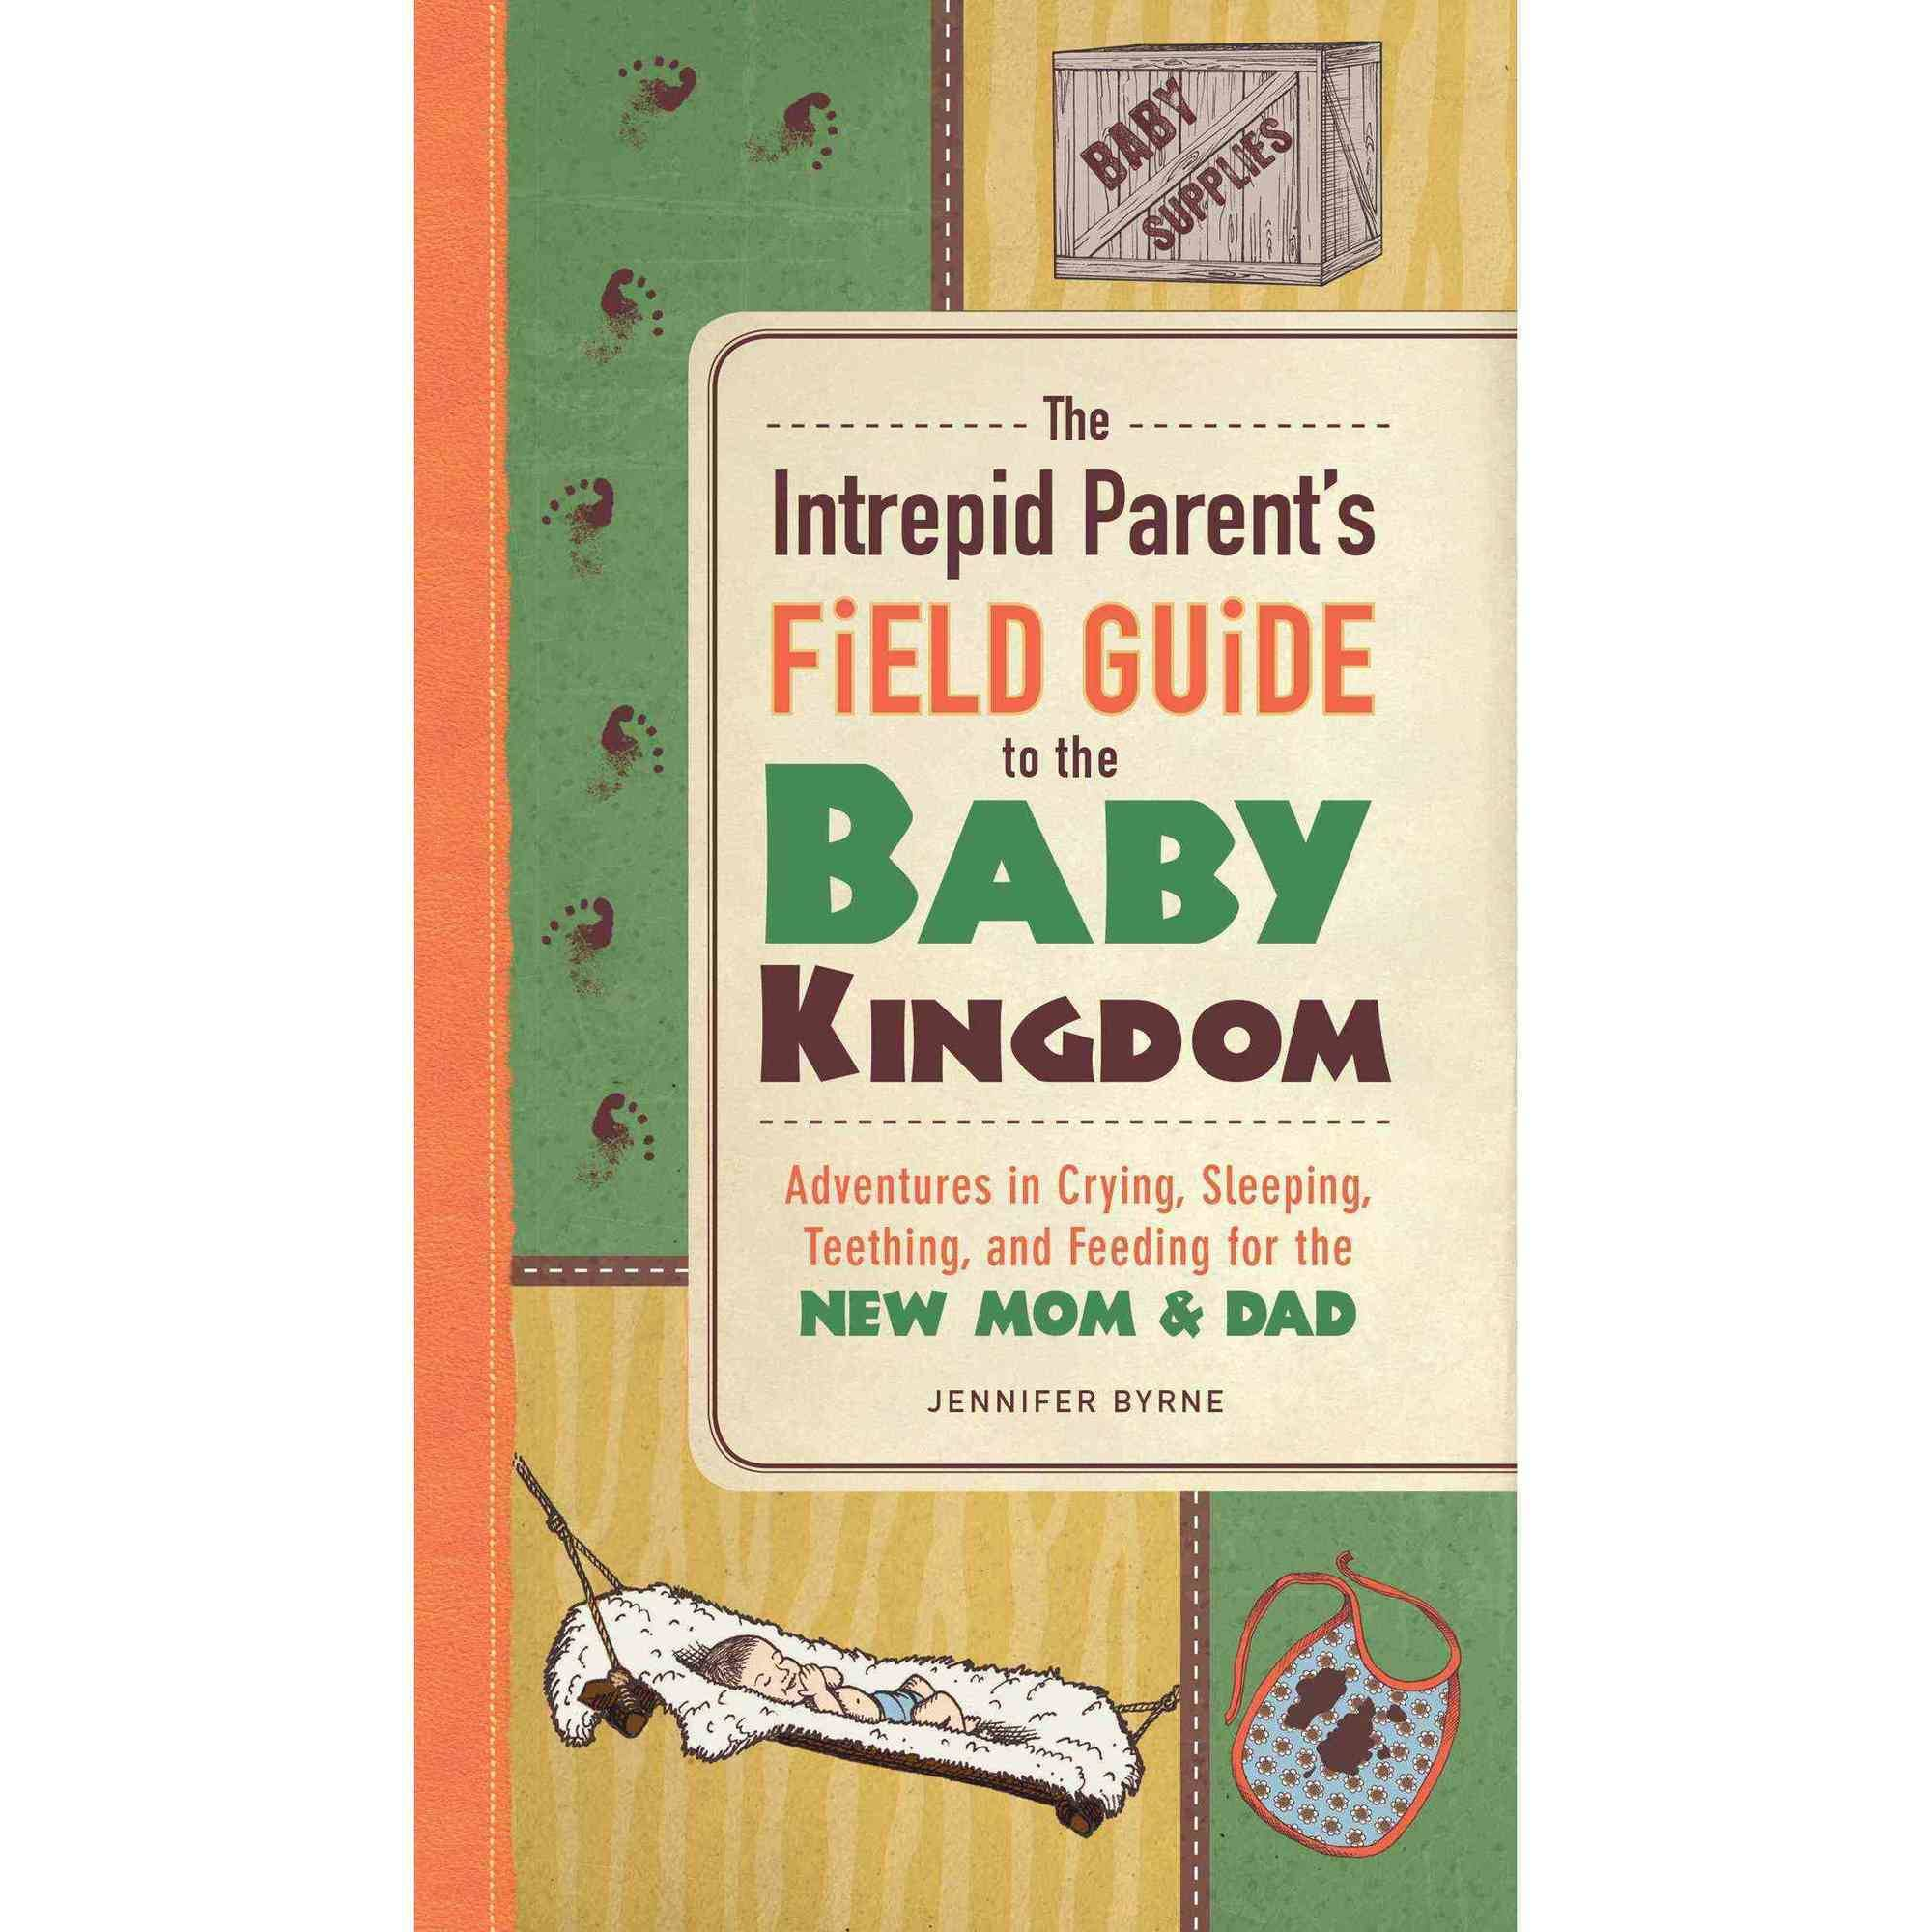 The Intrepid Parent's Field Guide to the Baby Kingdom: Adventures in Crying, Sleeping, Teething, and Feeding for the New Mom & Dad